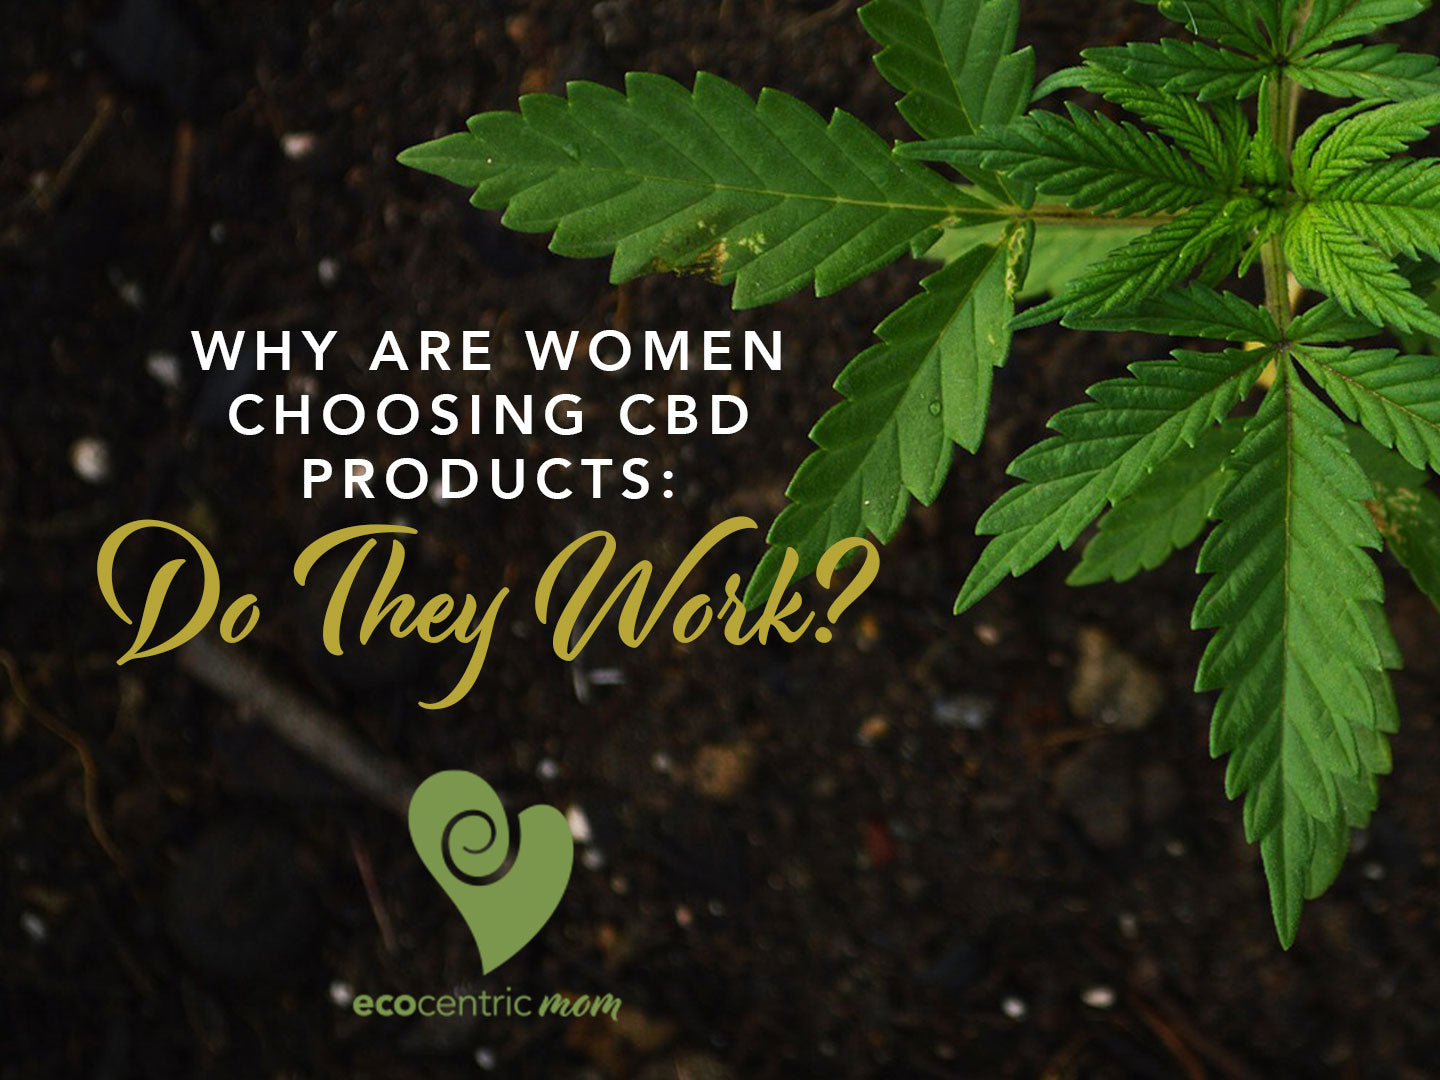 Why Are Women Choosing CBD Products: Do They Work?